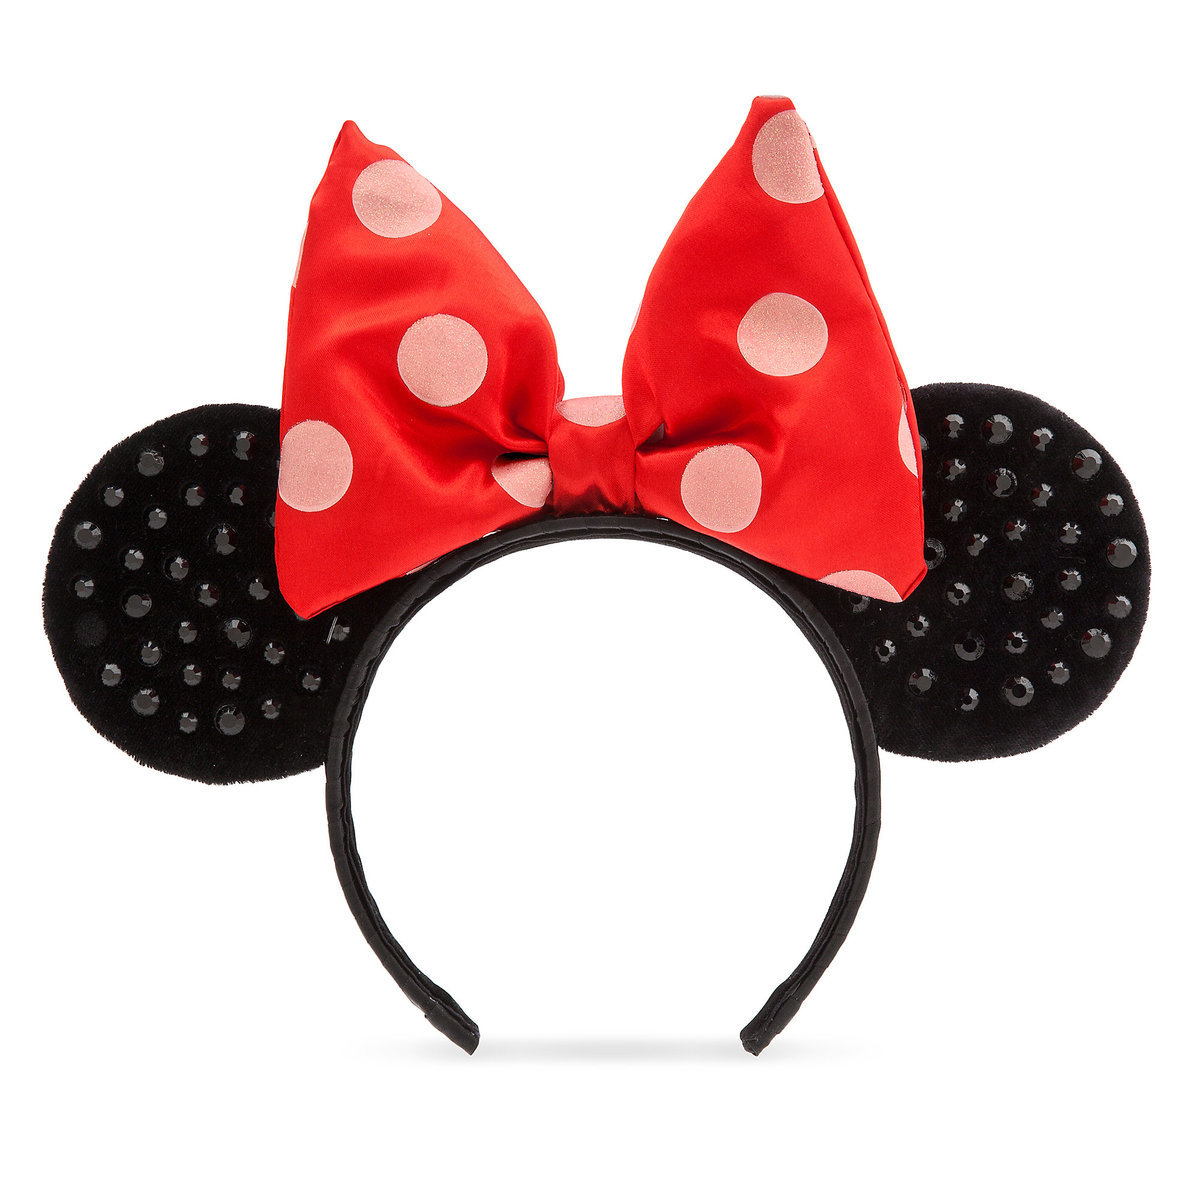 Minnie Mouse Ears Headband for Adults